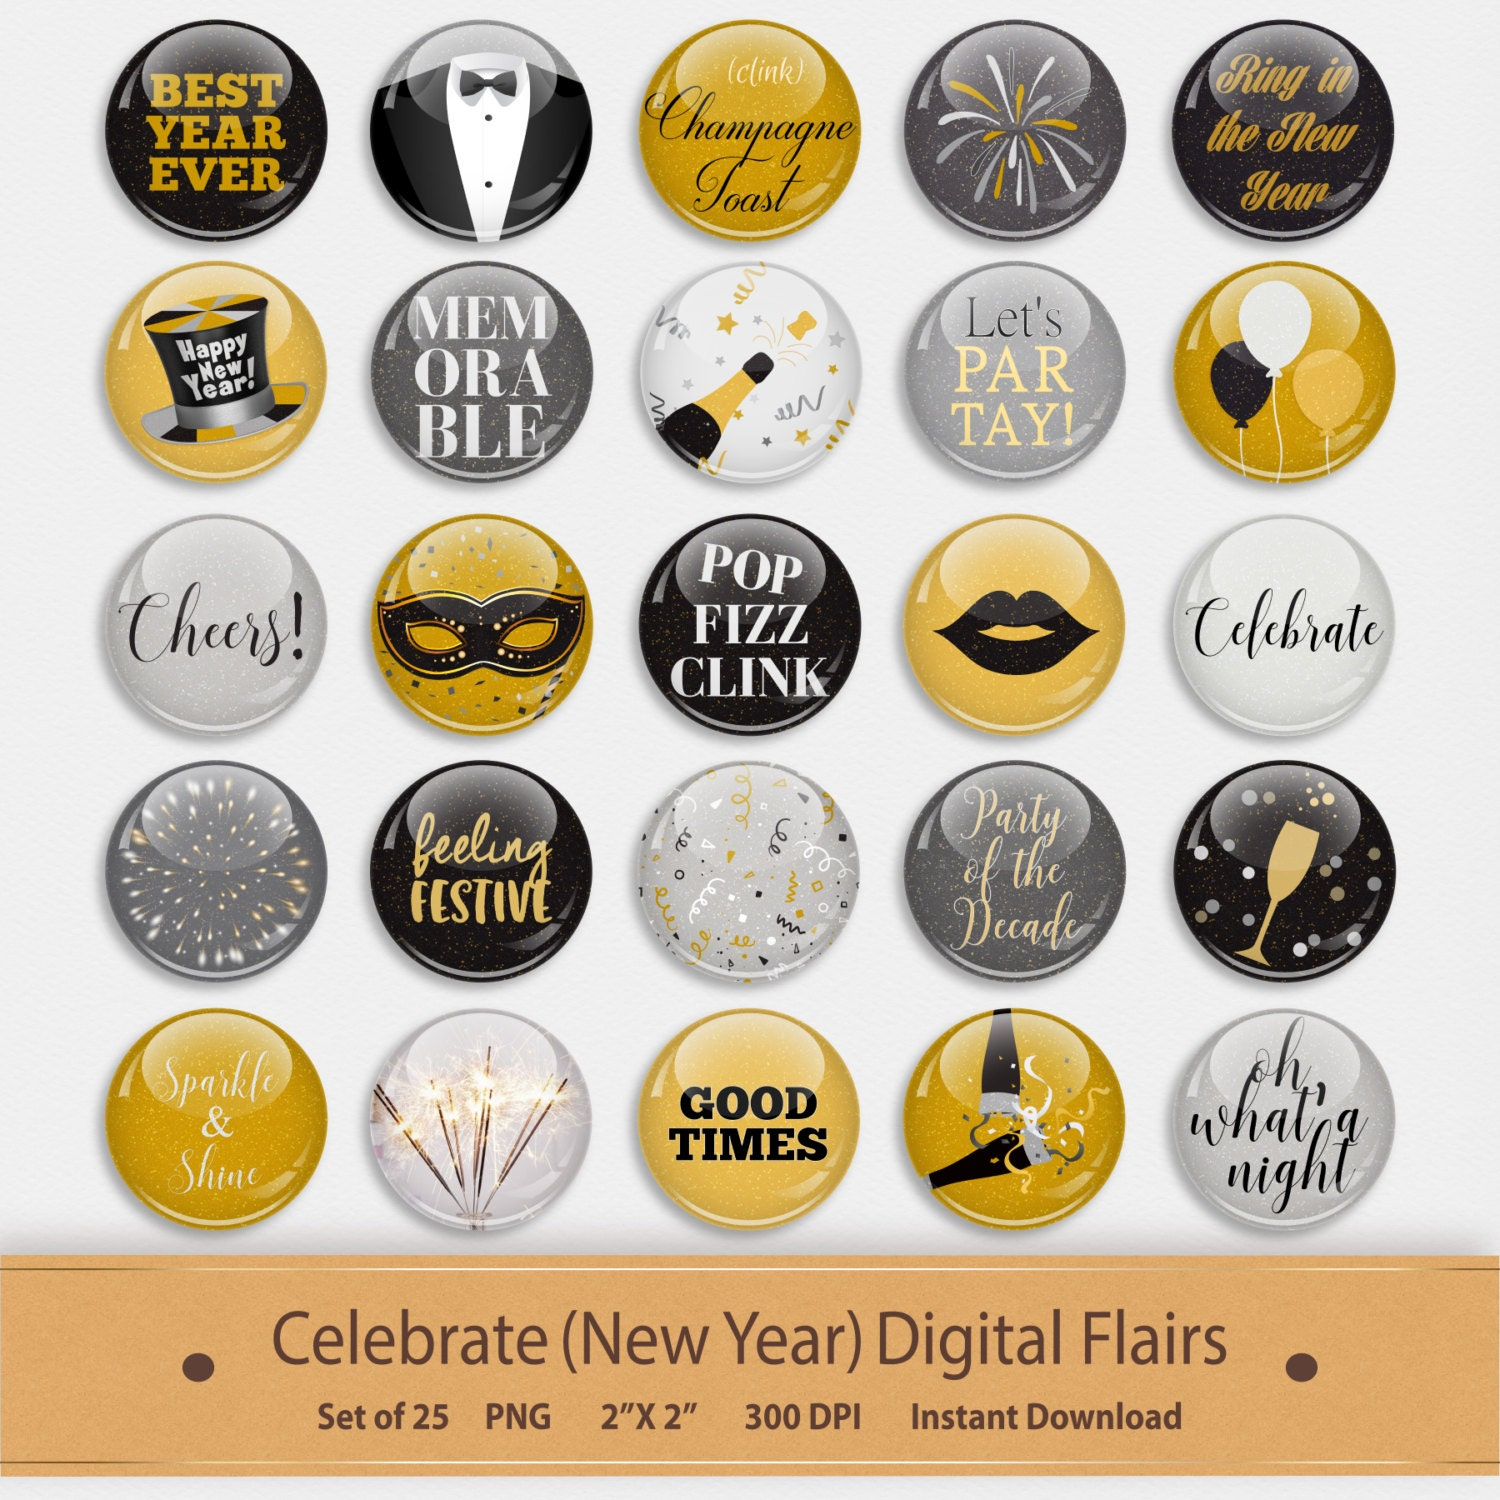 Celebrate New Years Digital Flairs Scrapbook Elements Pins